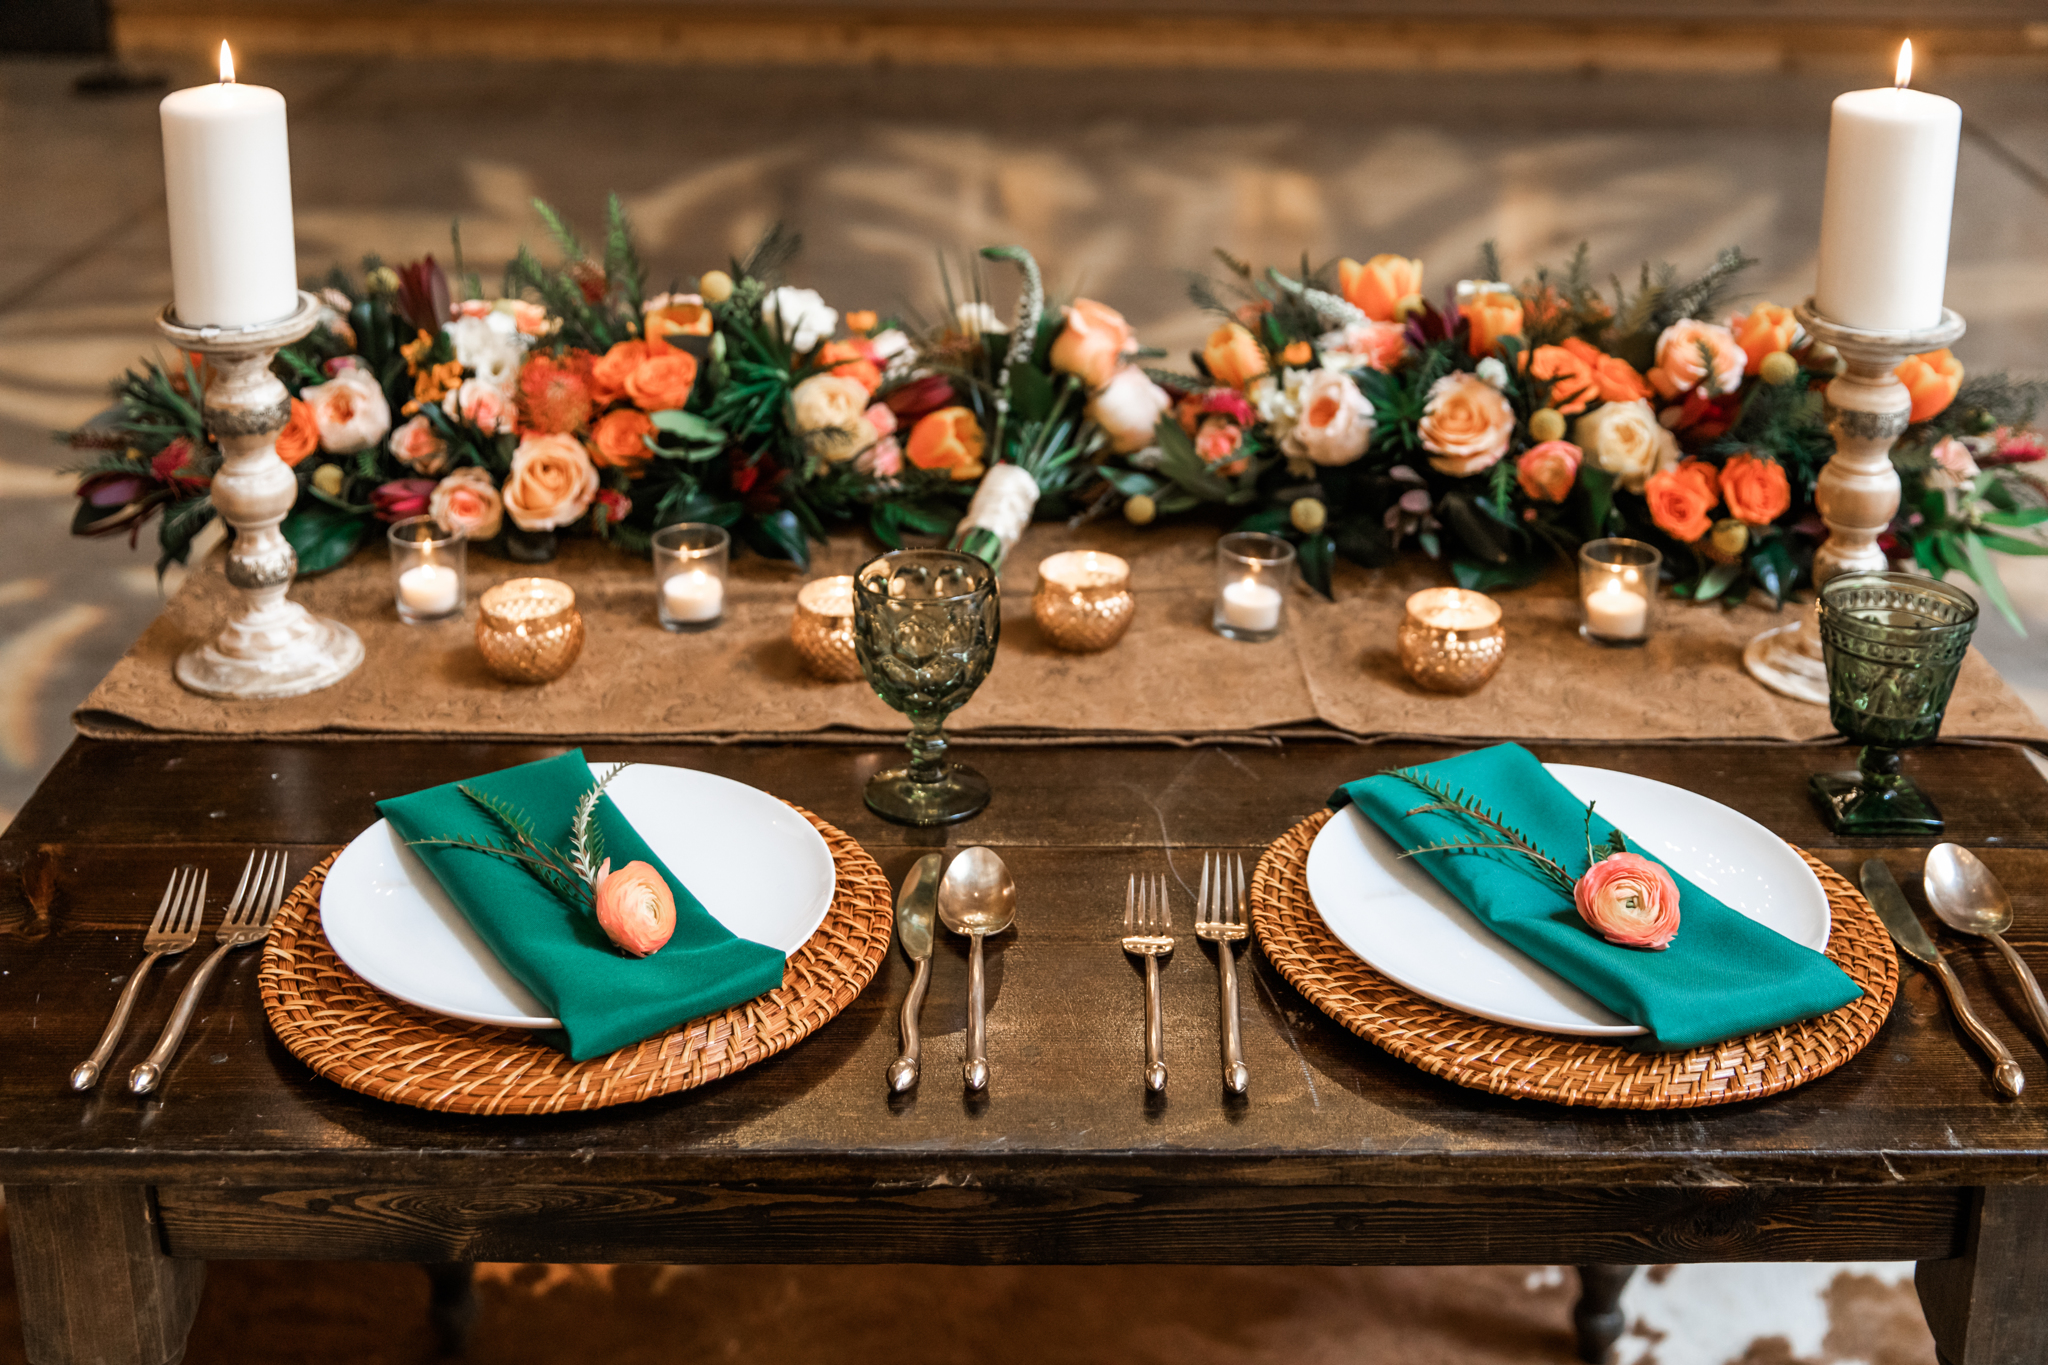 Wedding table setting ideas: Western Inspired Wedding by Laurie D'Anne Events featured on Nashville Bride Guide